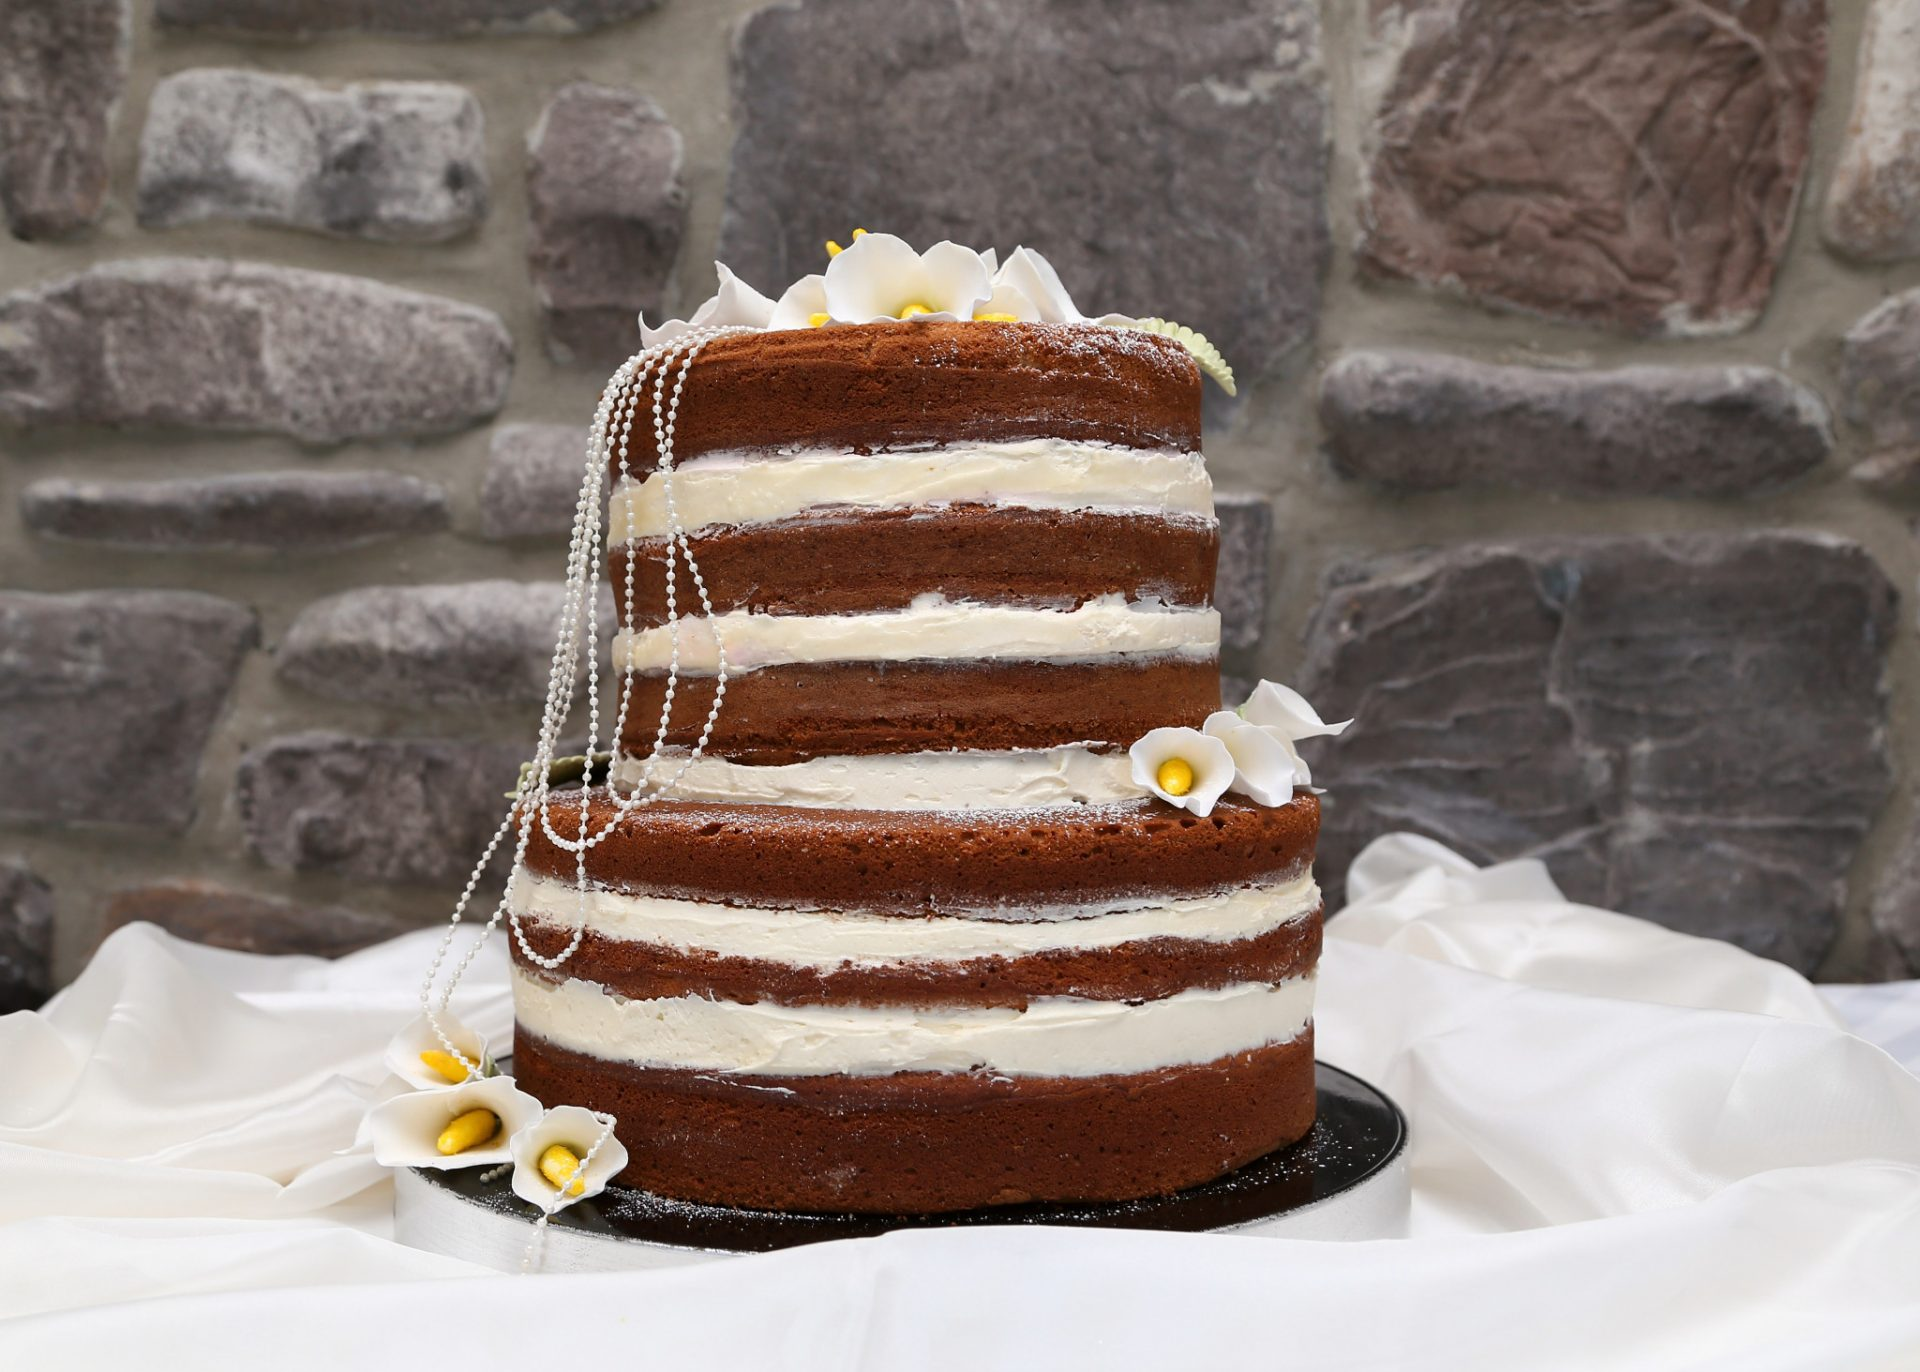 Naked wedding cake topped with flowers